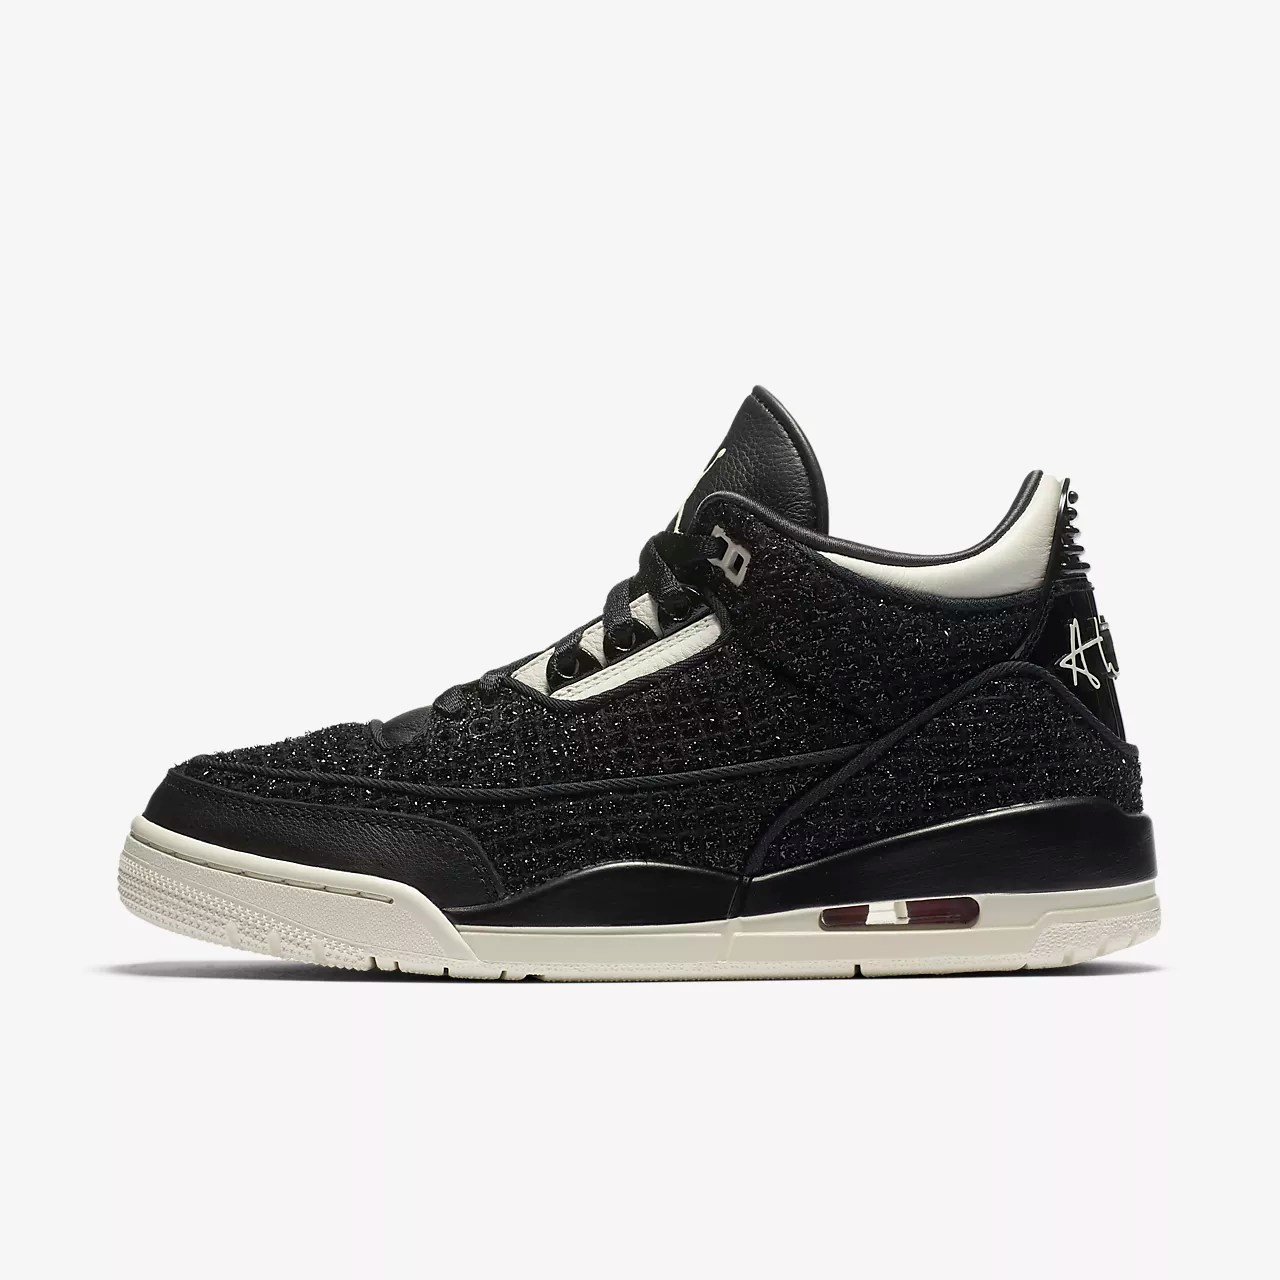 Air Jordan 3 Retro SE AWOK Women s Shoe  Nike com Air Jordan 3 Retro SE AWOK Women s Shoe